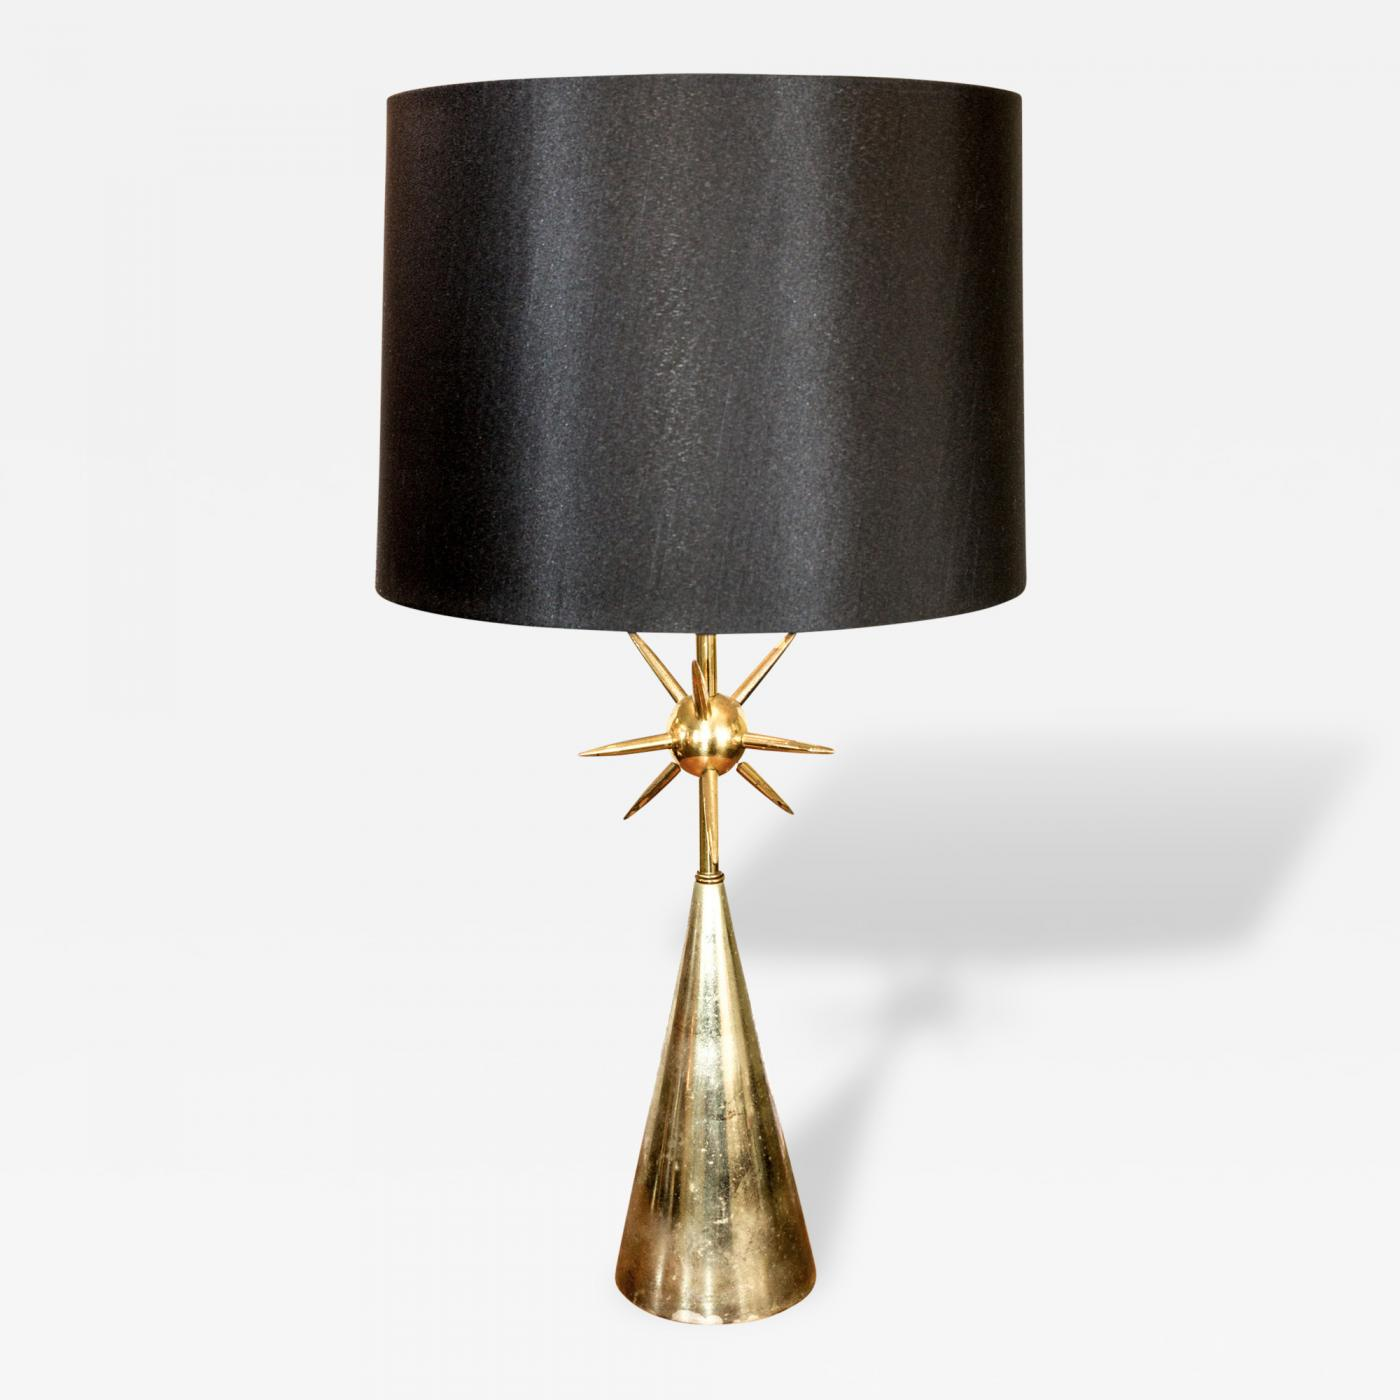 Listings / Furniture / Lighting / Table Lamps